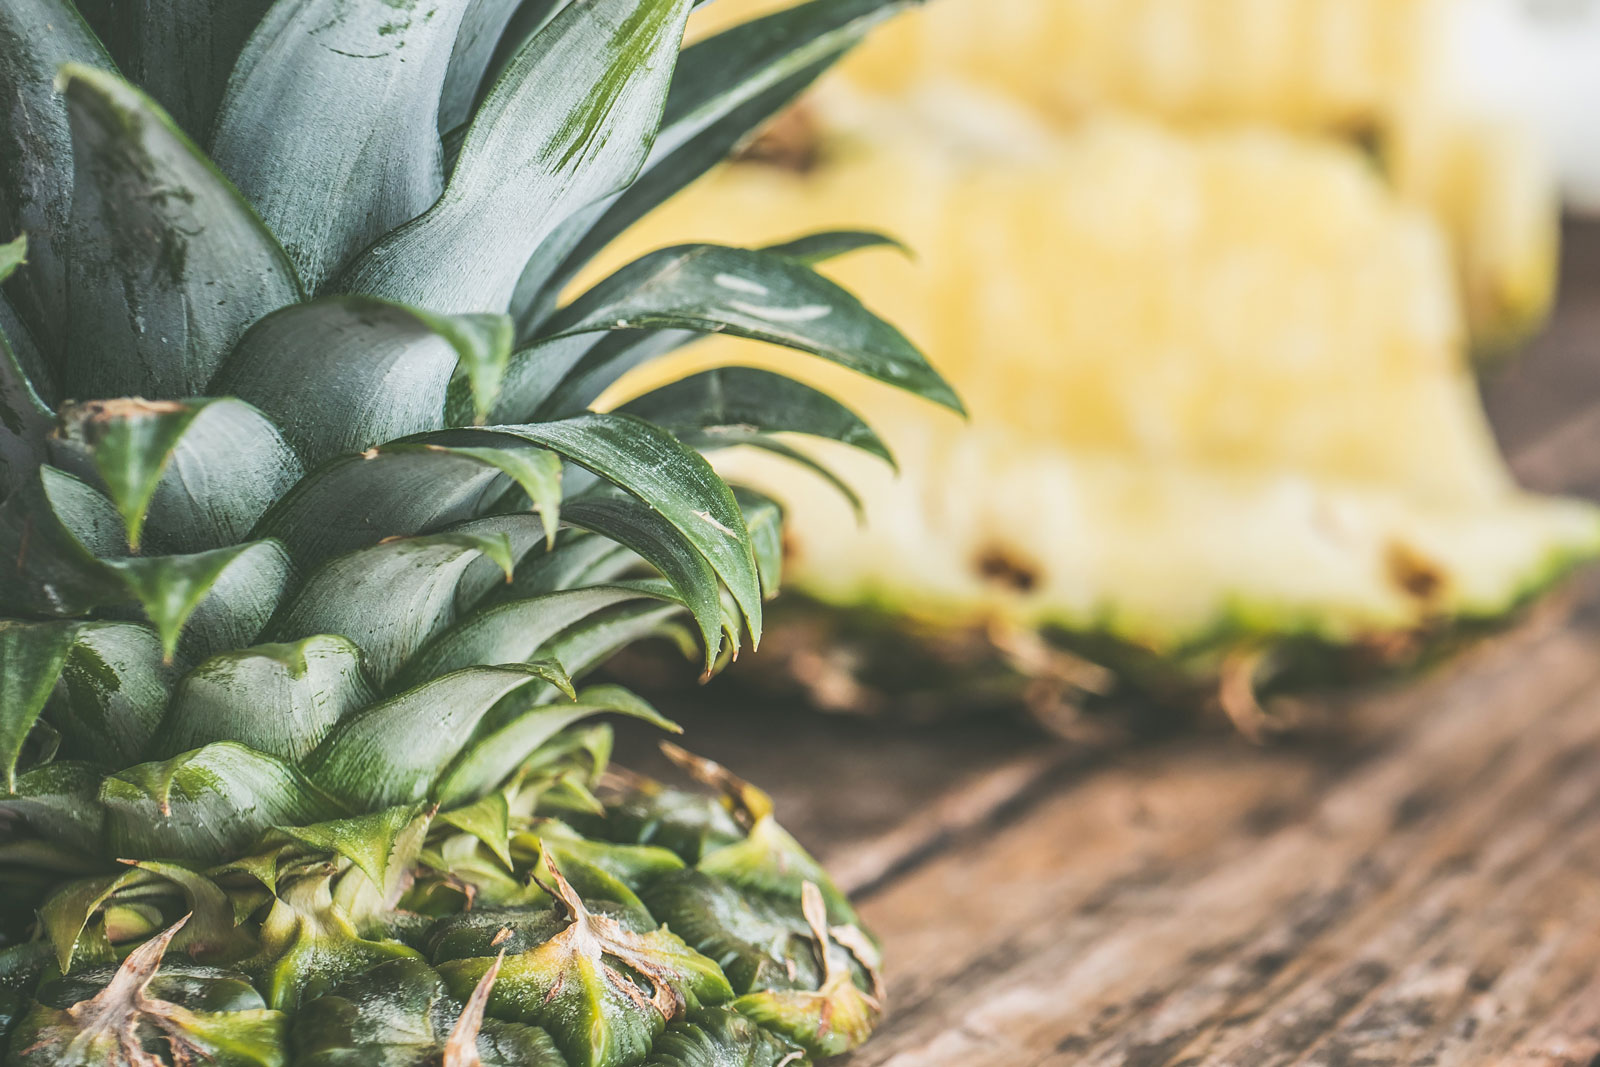 Pineapple | The Best Fruits and Vegetables for Juicing With 3 Ingredients